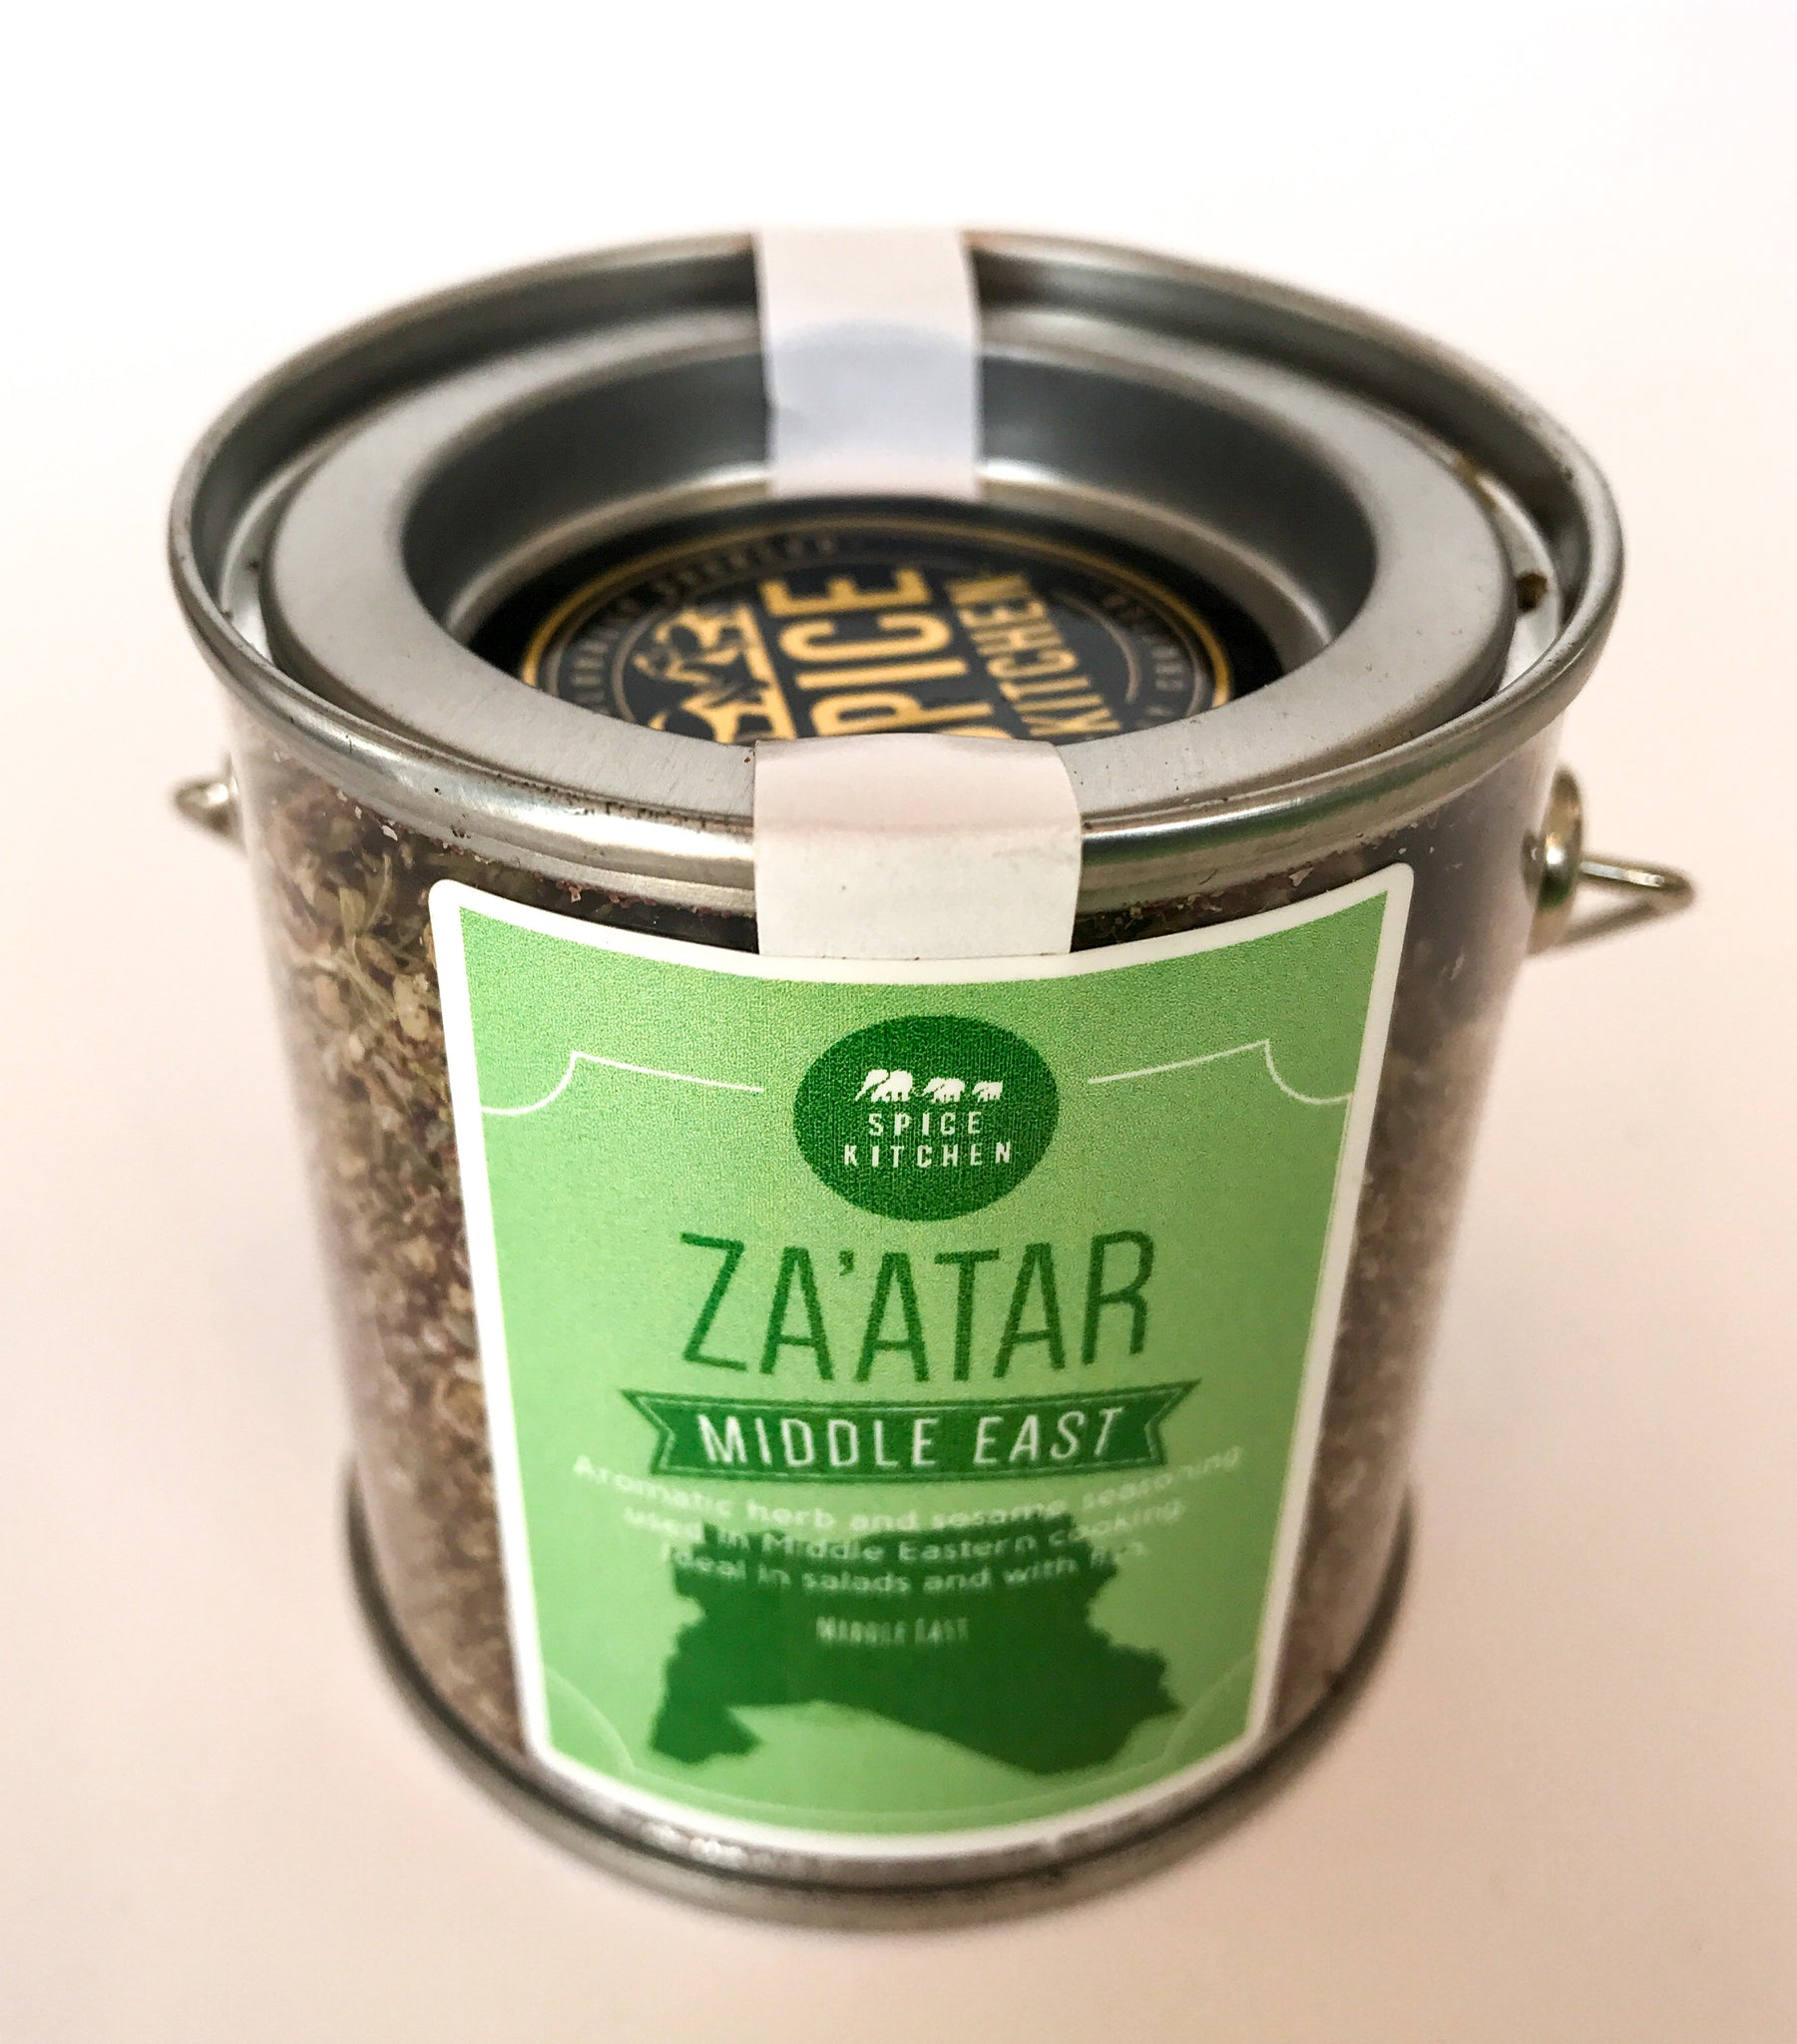 Spice Kitchen Spice Blend 'Paint Pots' - Za'atar (Middle East)